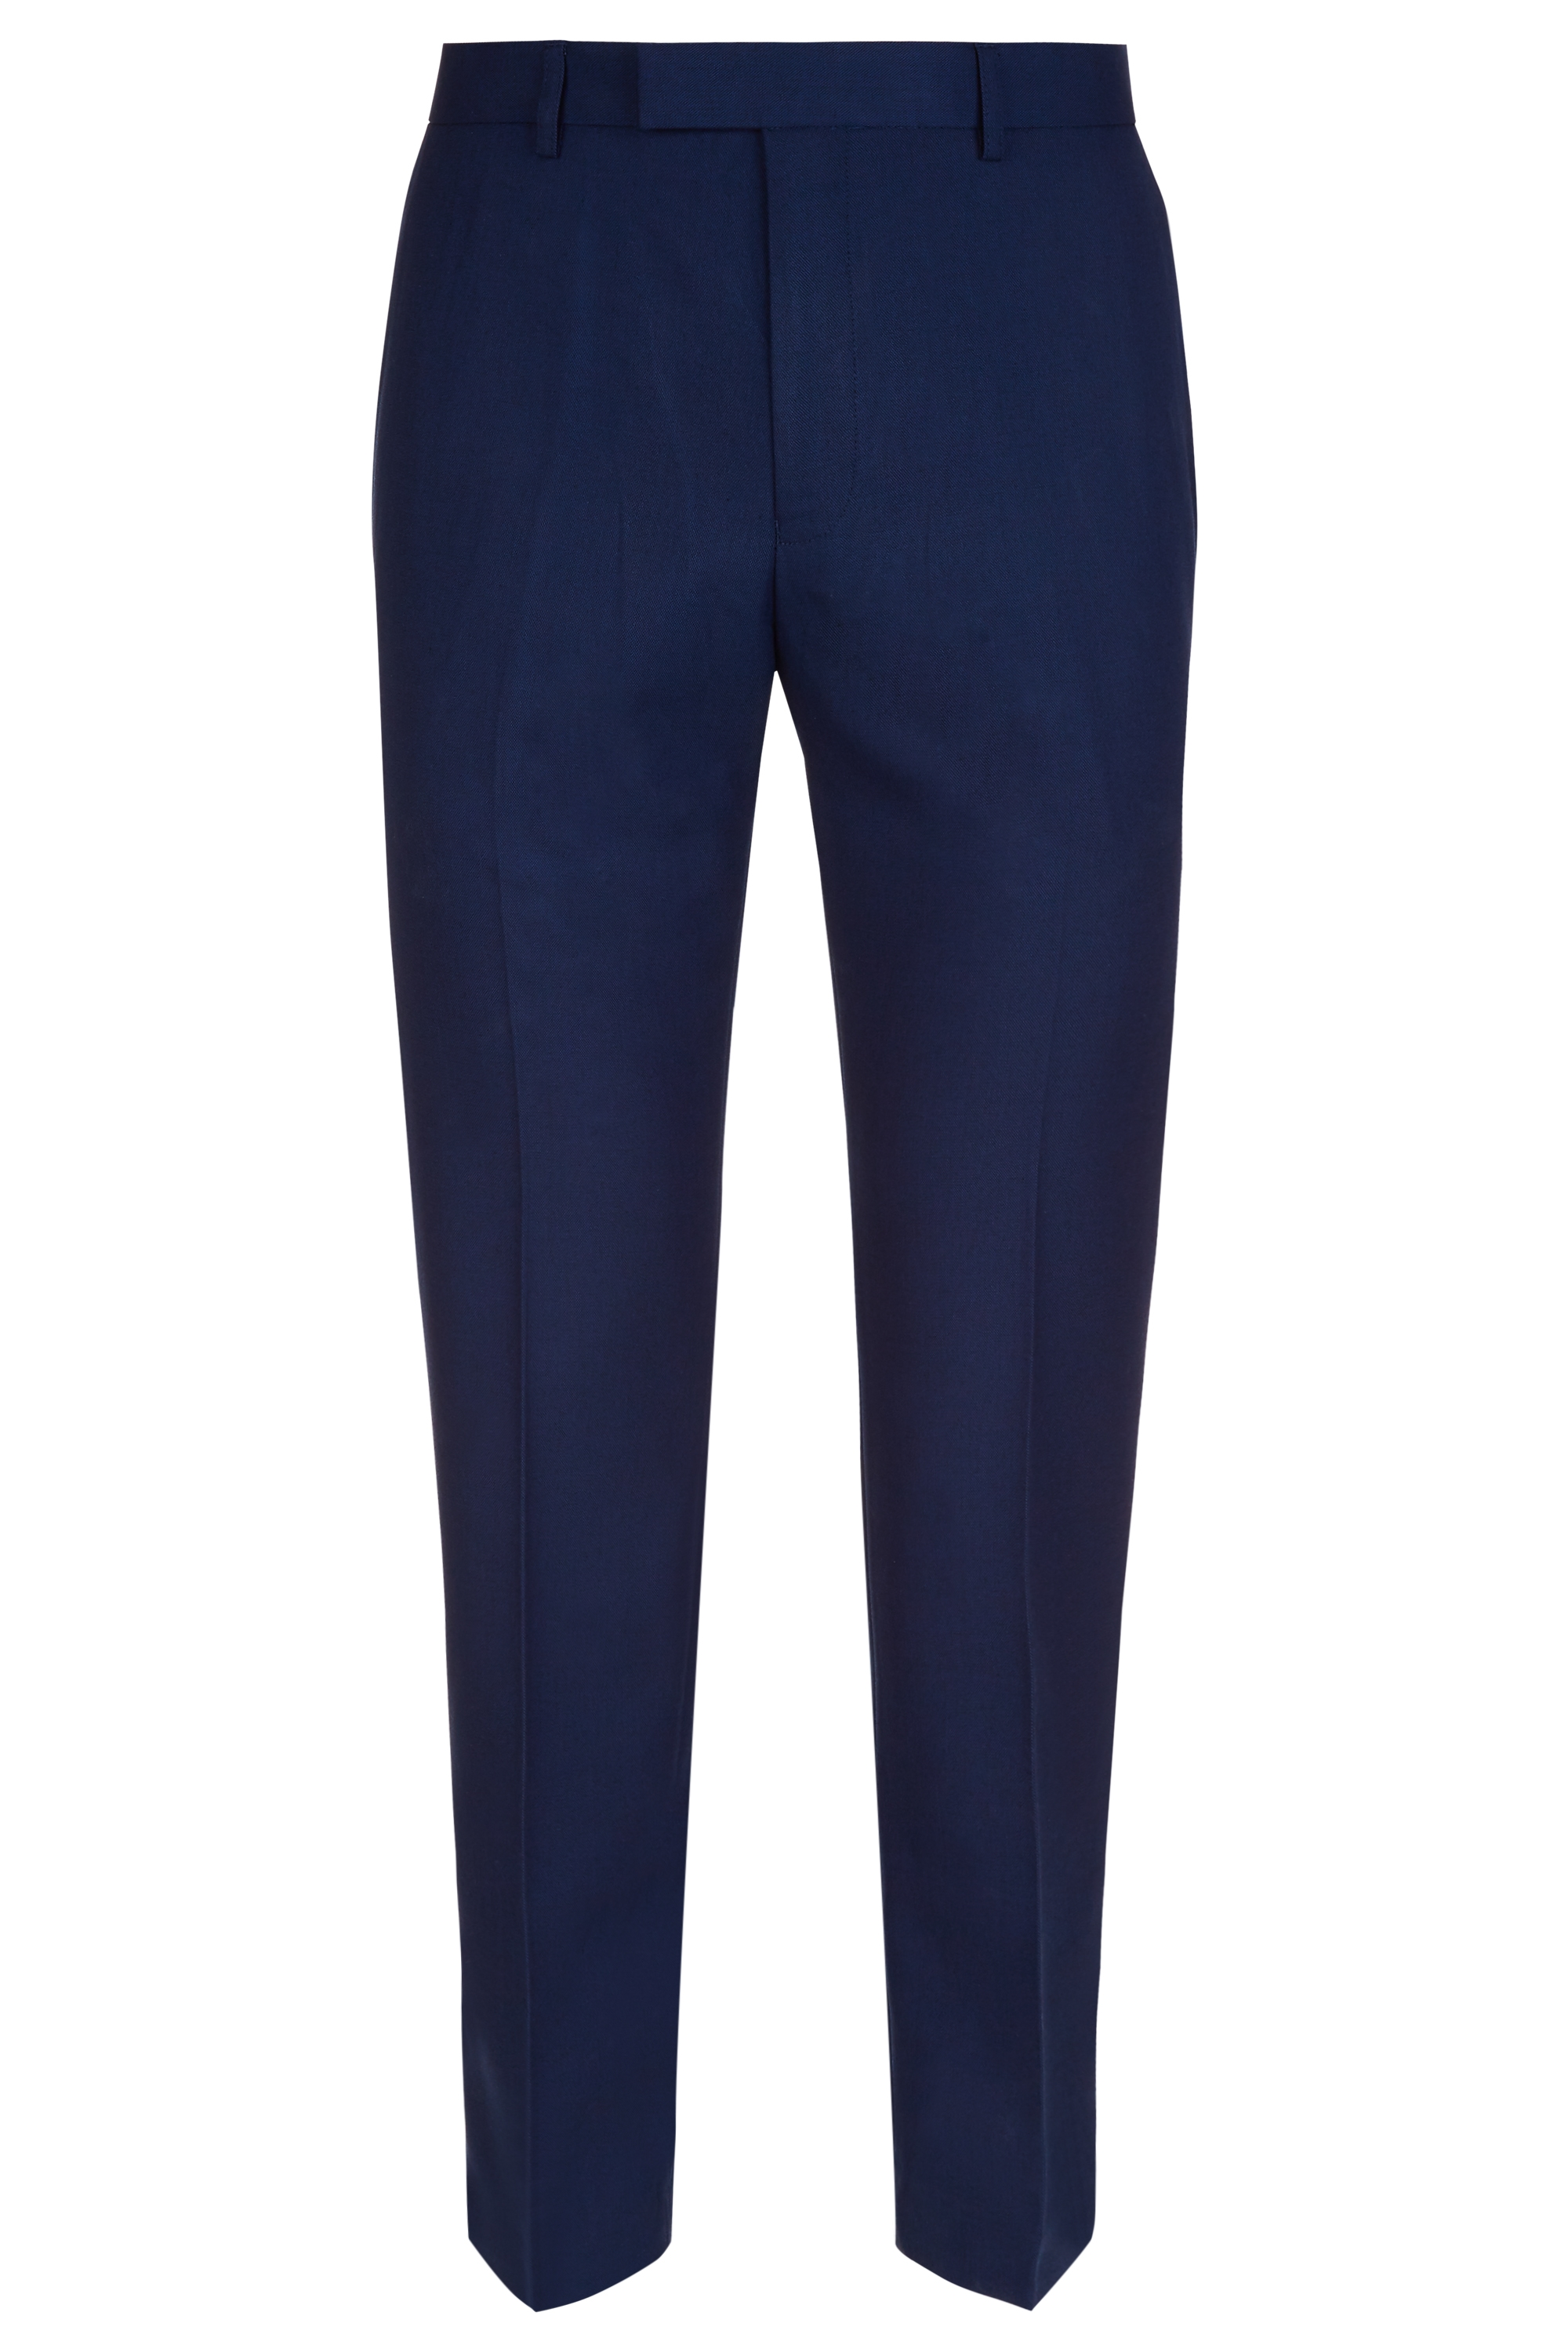 4c7ffc68f8cc8 Moss Esquire Mens Navy Blue Suit Trousers Slim Fit Pleated Formal ...